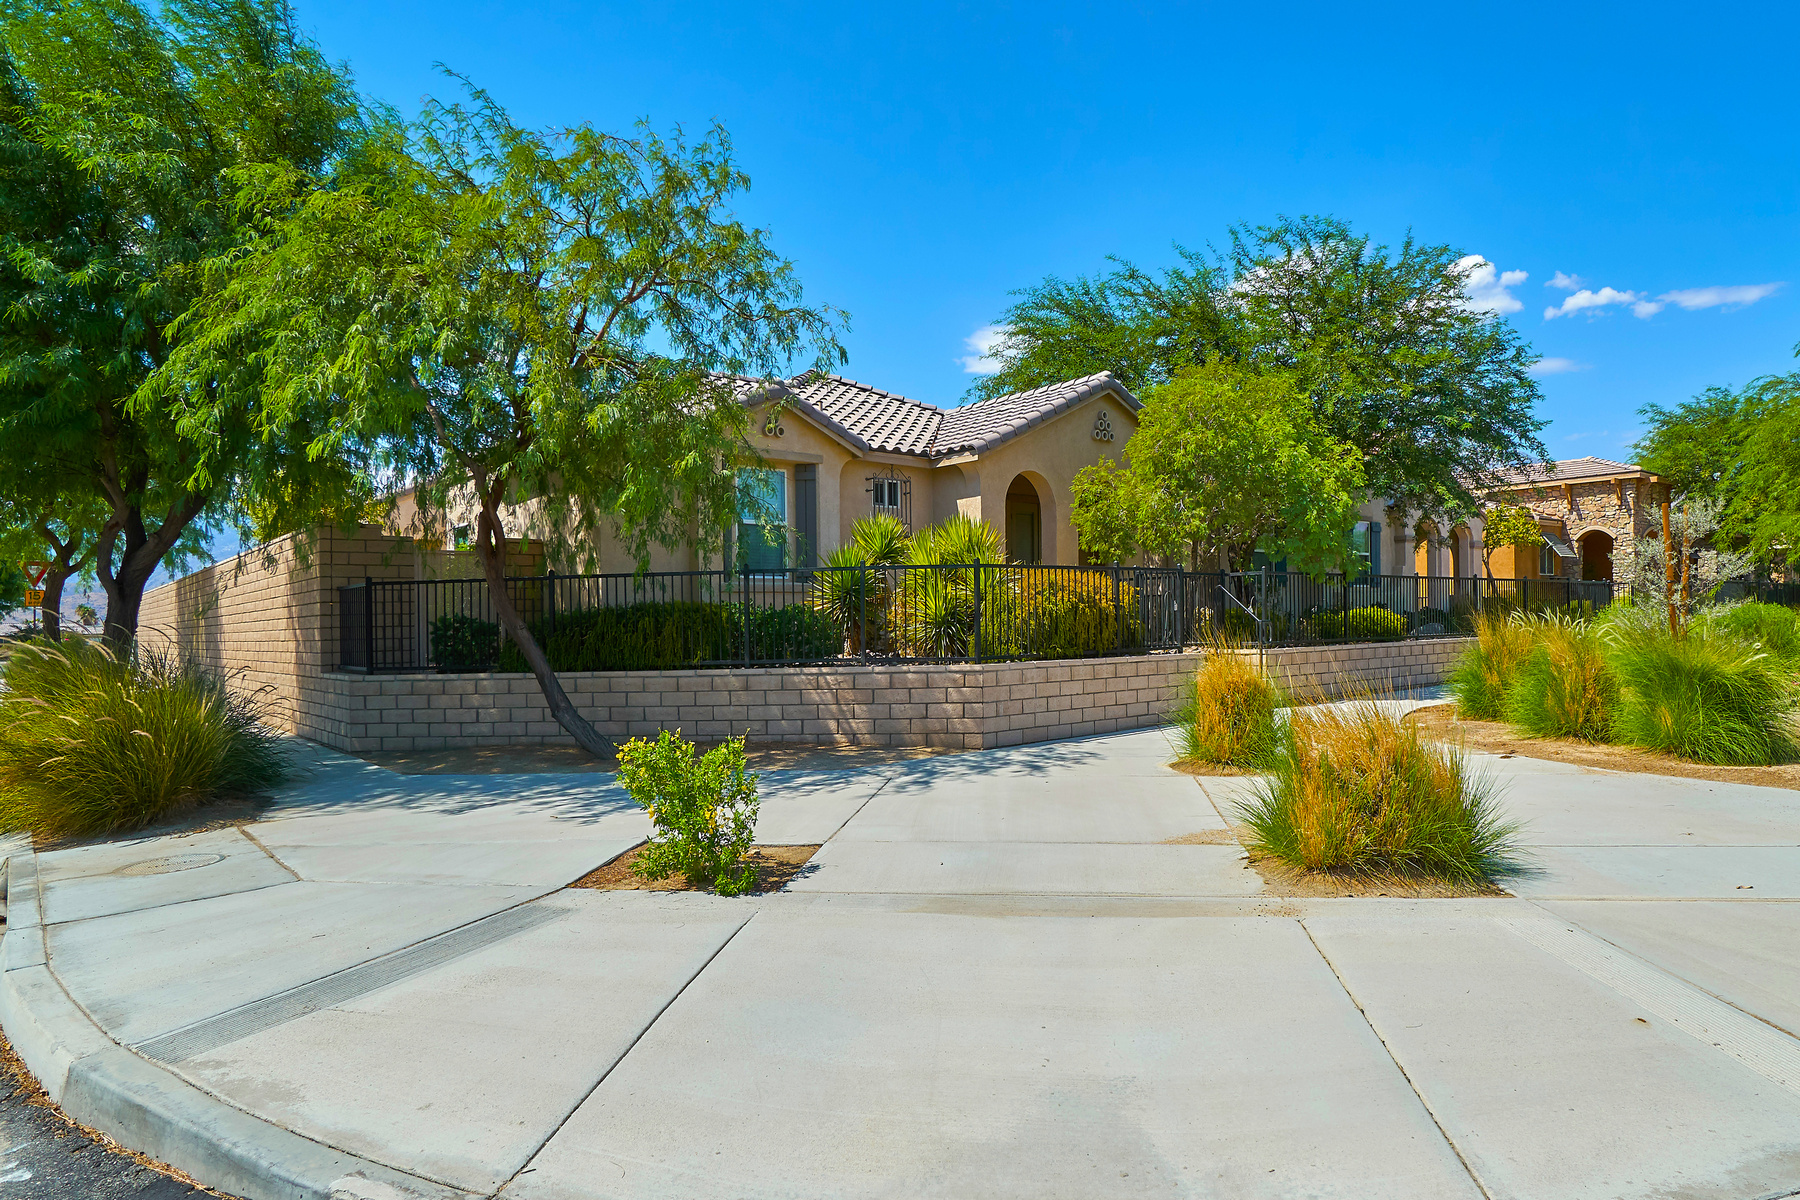 Single Family Homes for Sale at 67901 Rio Vista Drive Cathedral City, California 92234 United States